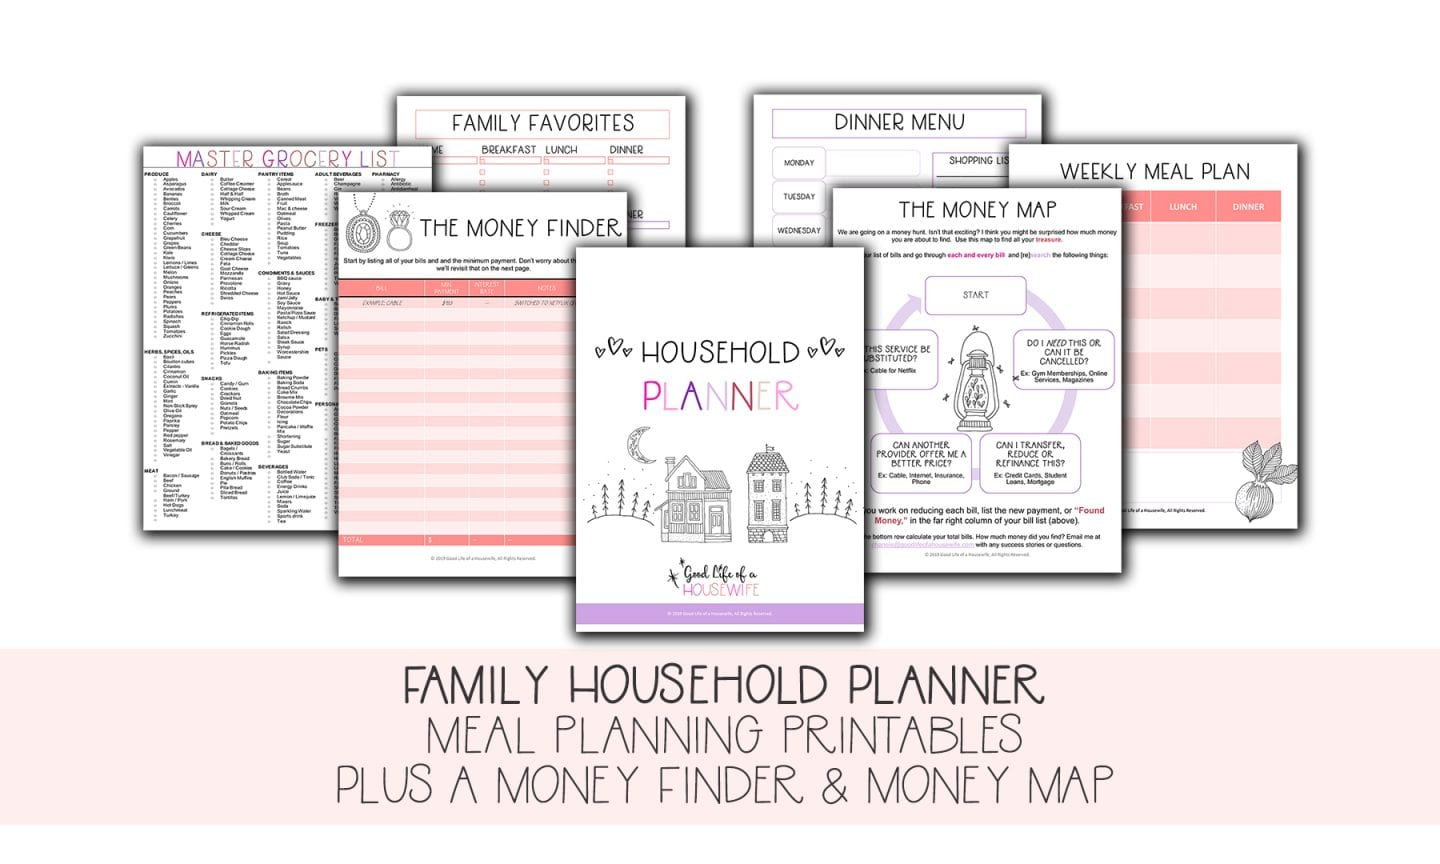 Family Household Planner 2019 Meal planning printables to save money